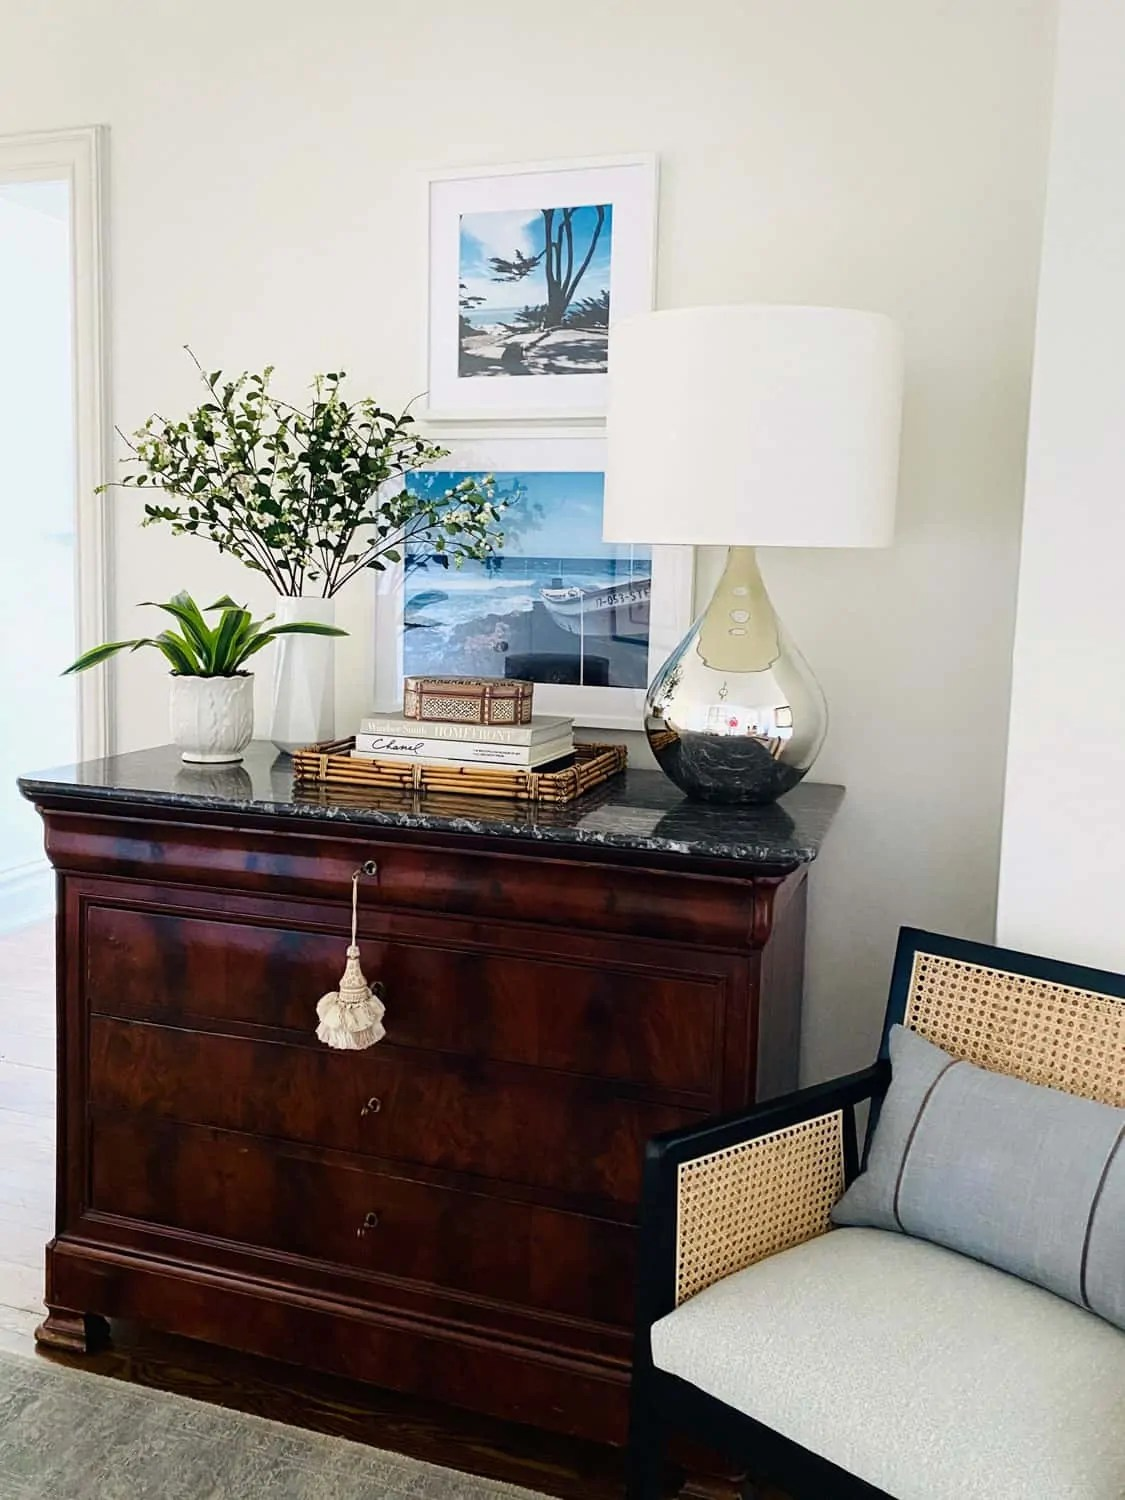 Styling an Antique chest in the foyer